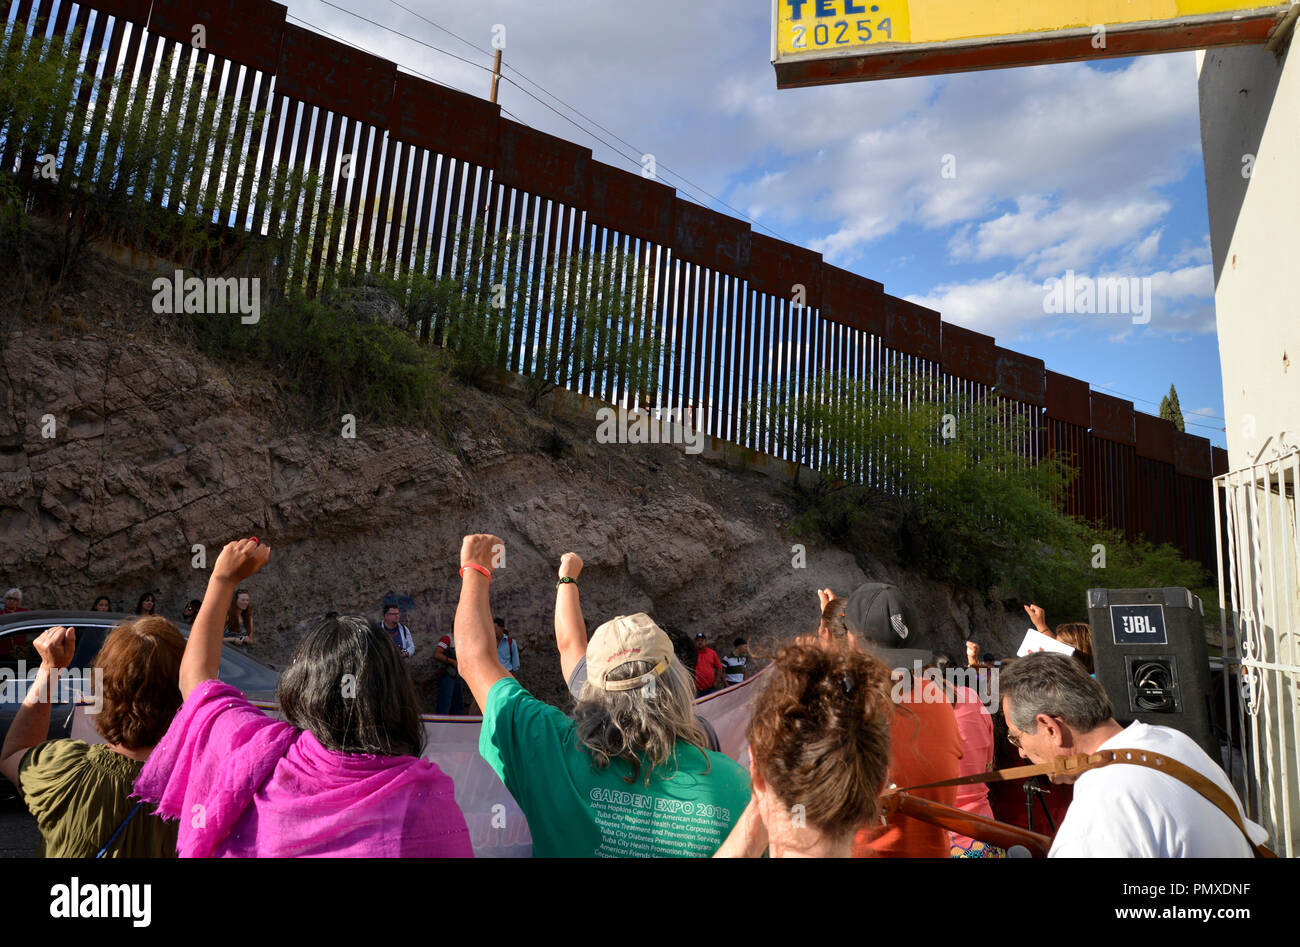 Protestors in Nogales, Sonora, Mexico, raise their fists to the border wall in Nogales, Arizona, USA, during a protest of the shooting of a teen in Me - Stock Image